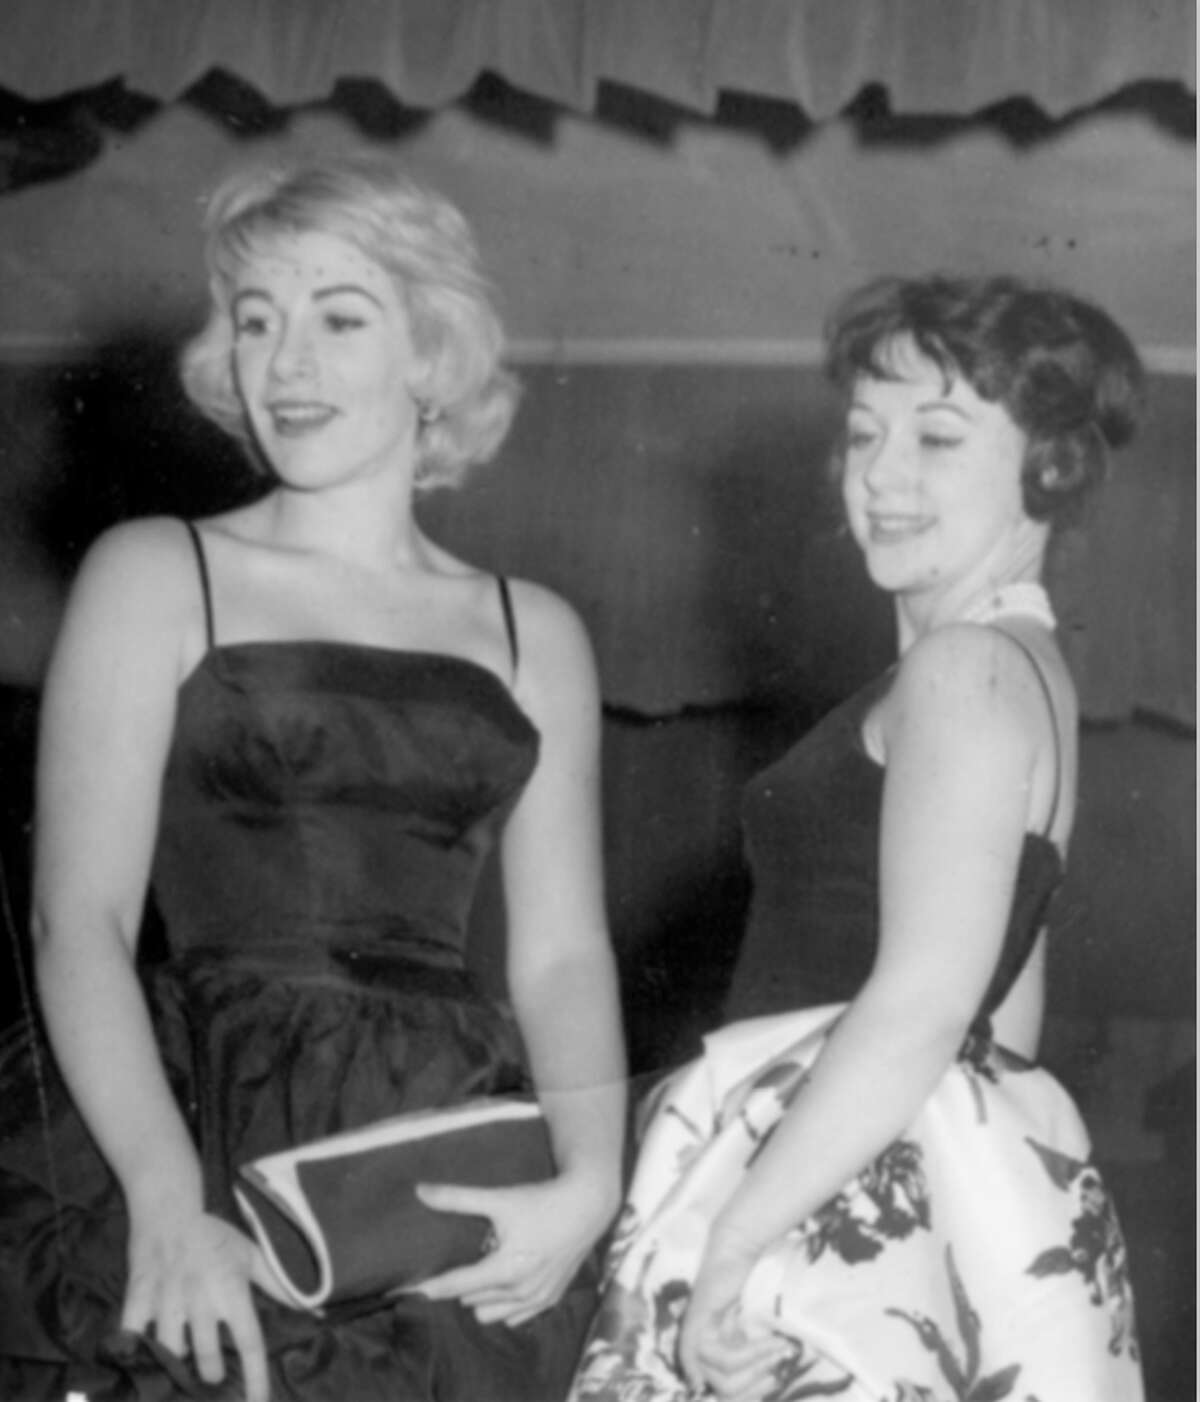 A USO photo of a young Joan Rivers and Arden Anderson-Broecking